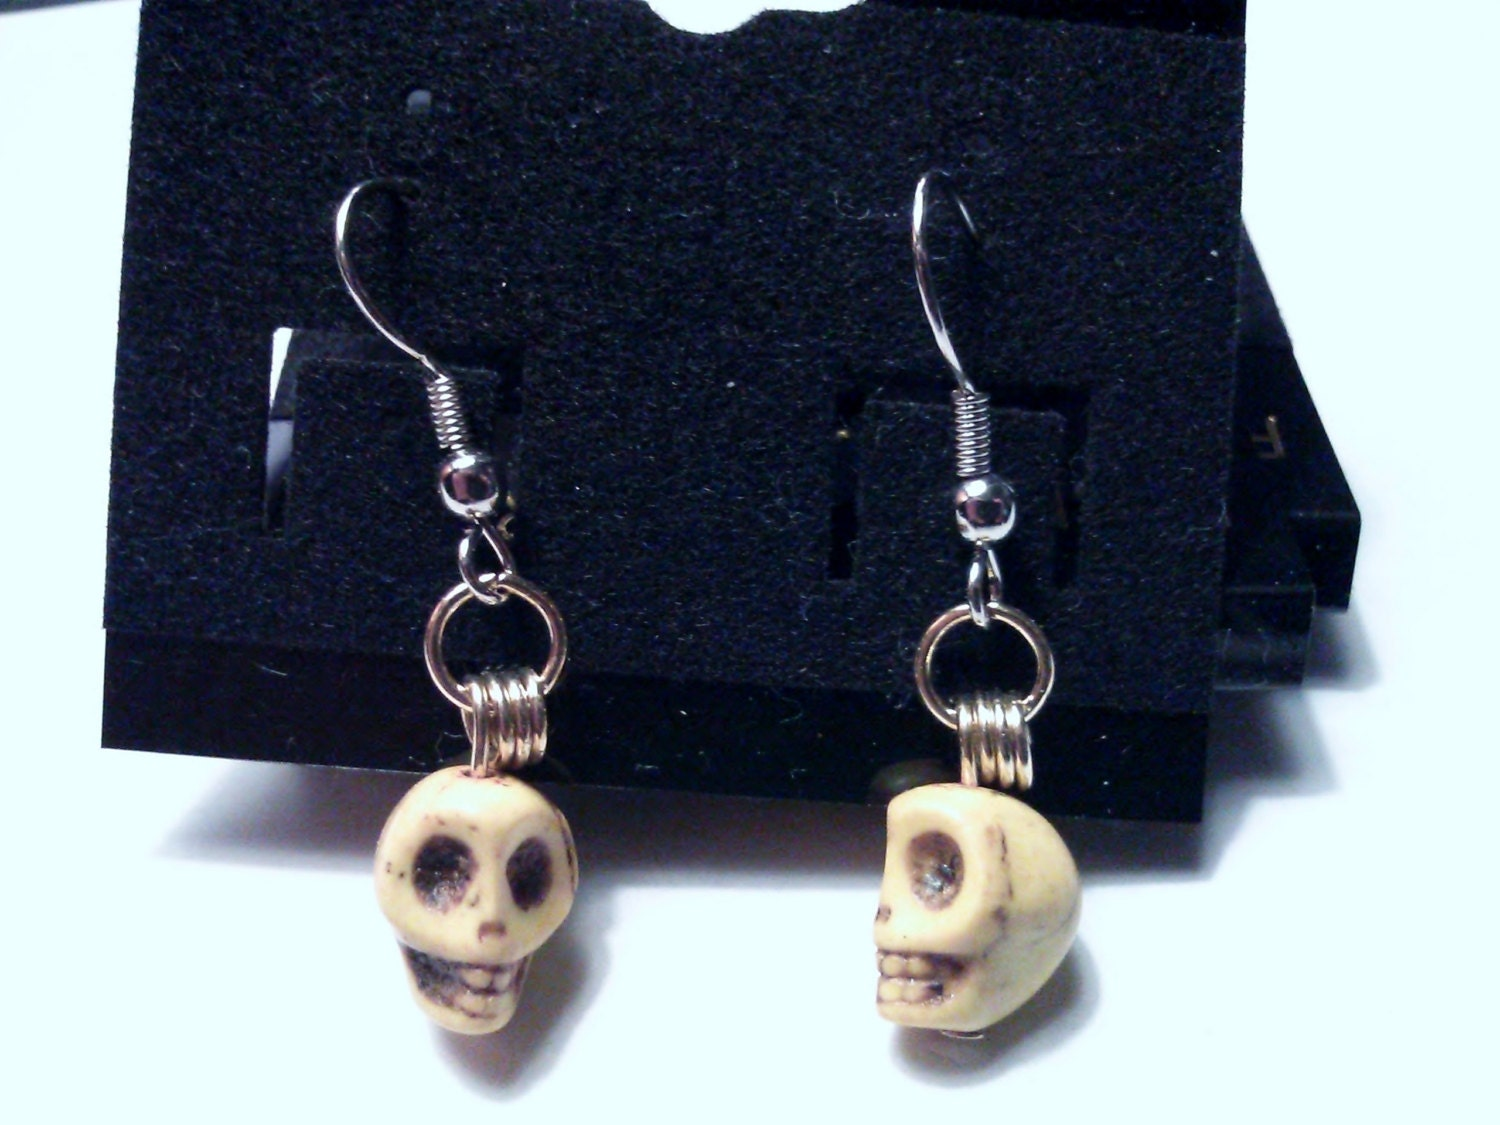 Stone Skull Earrings Dyed Turquoise Your Choice of Color and Your Choice of Fitting Stud Nickle Free Steel Silver Cosplay Gothic Emo Fantasy